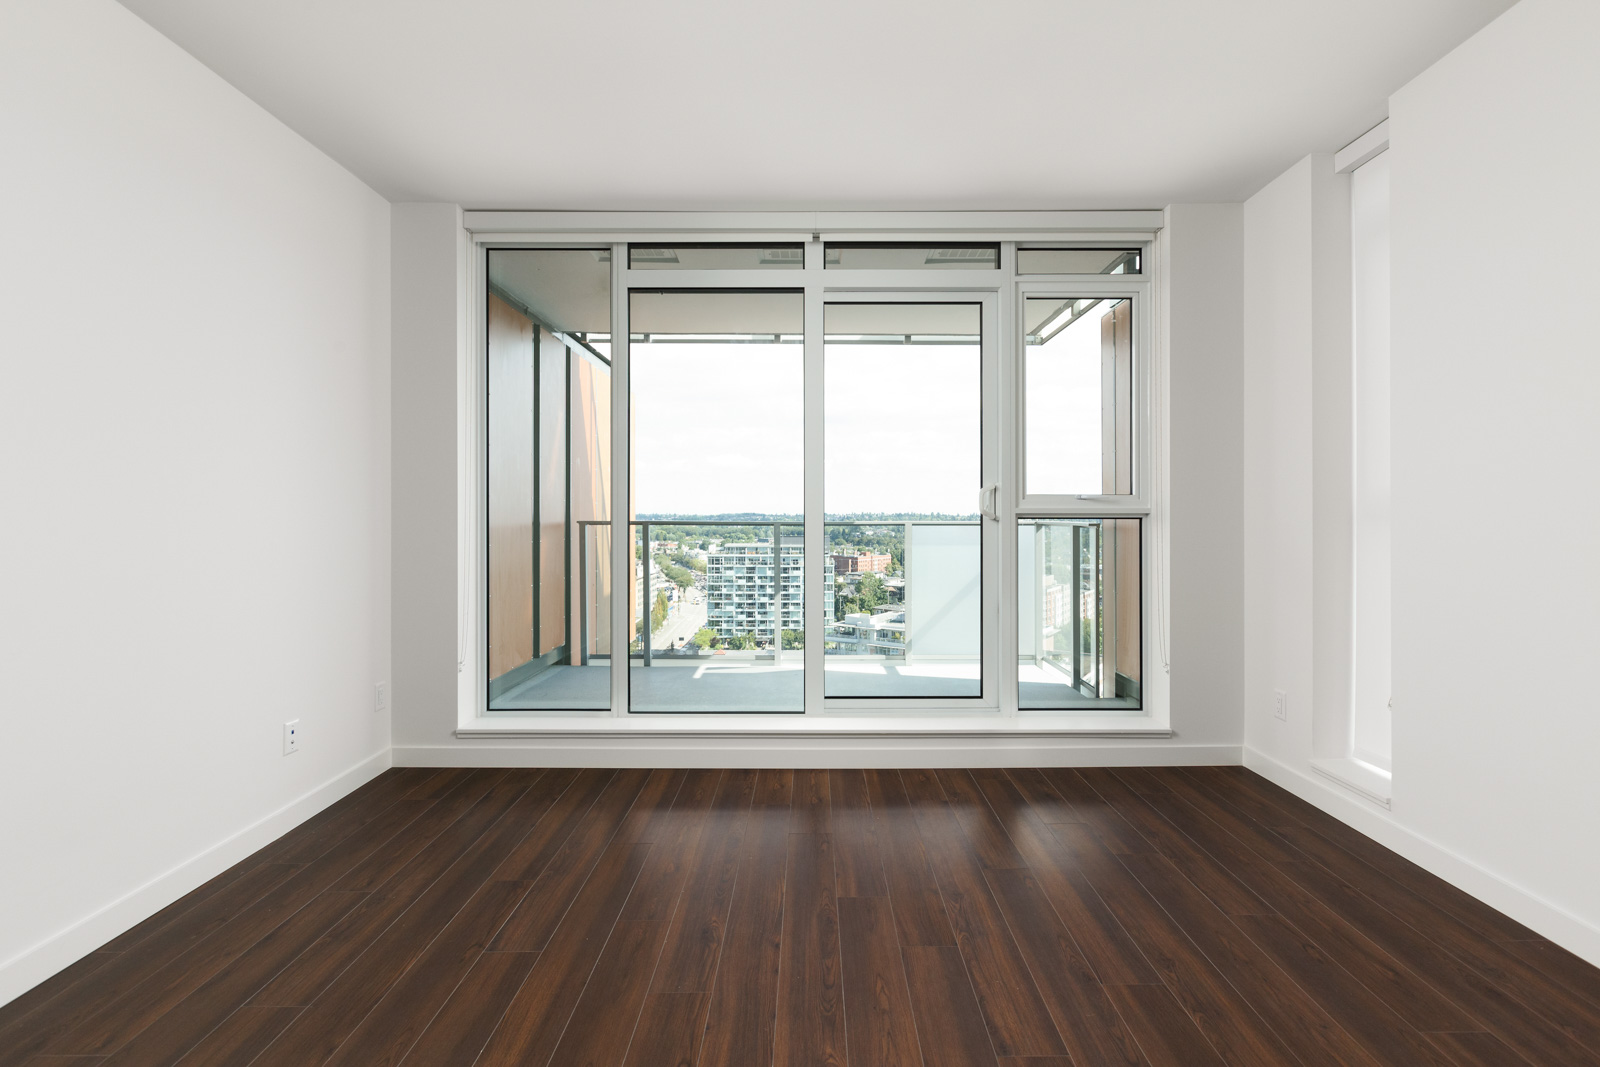 Bedroom with floor-to-ceiling window and balcony access to views of Vancouver.